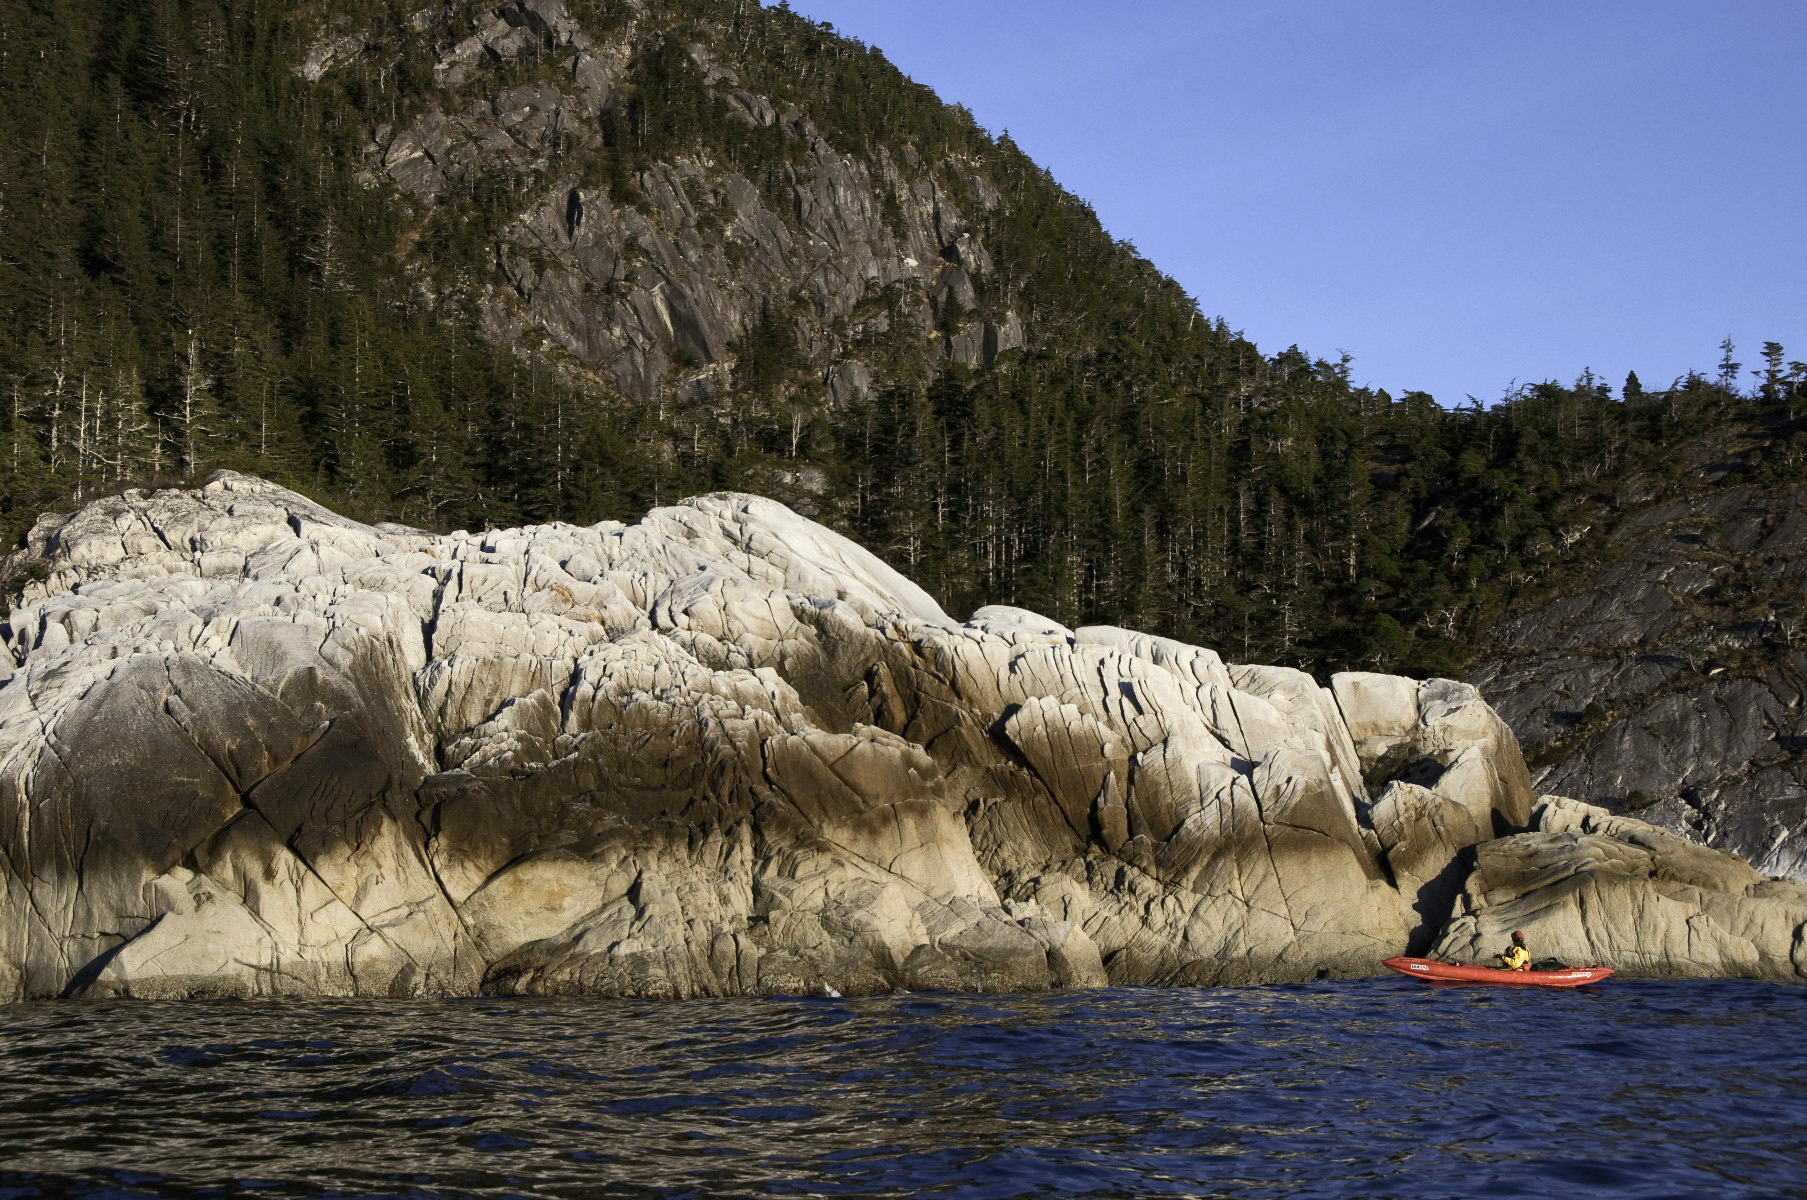 These outer coast headlands of hard granite-like rock are infrequently visited by kayakers.